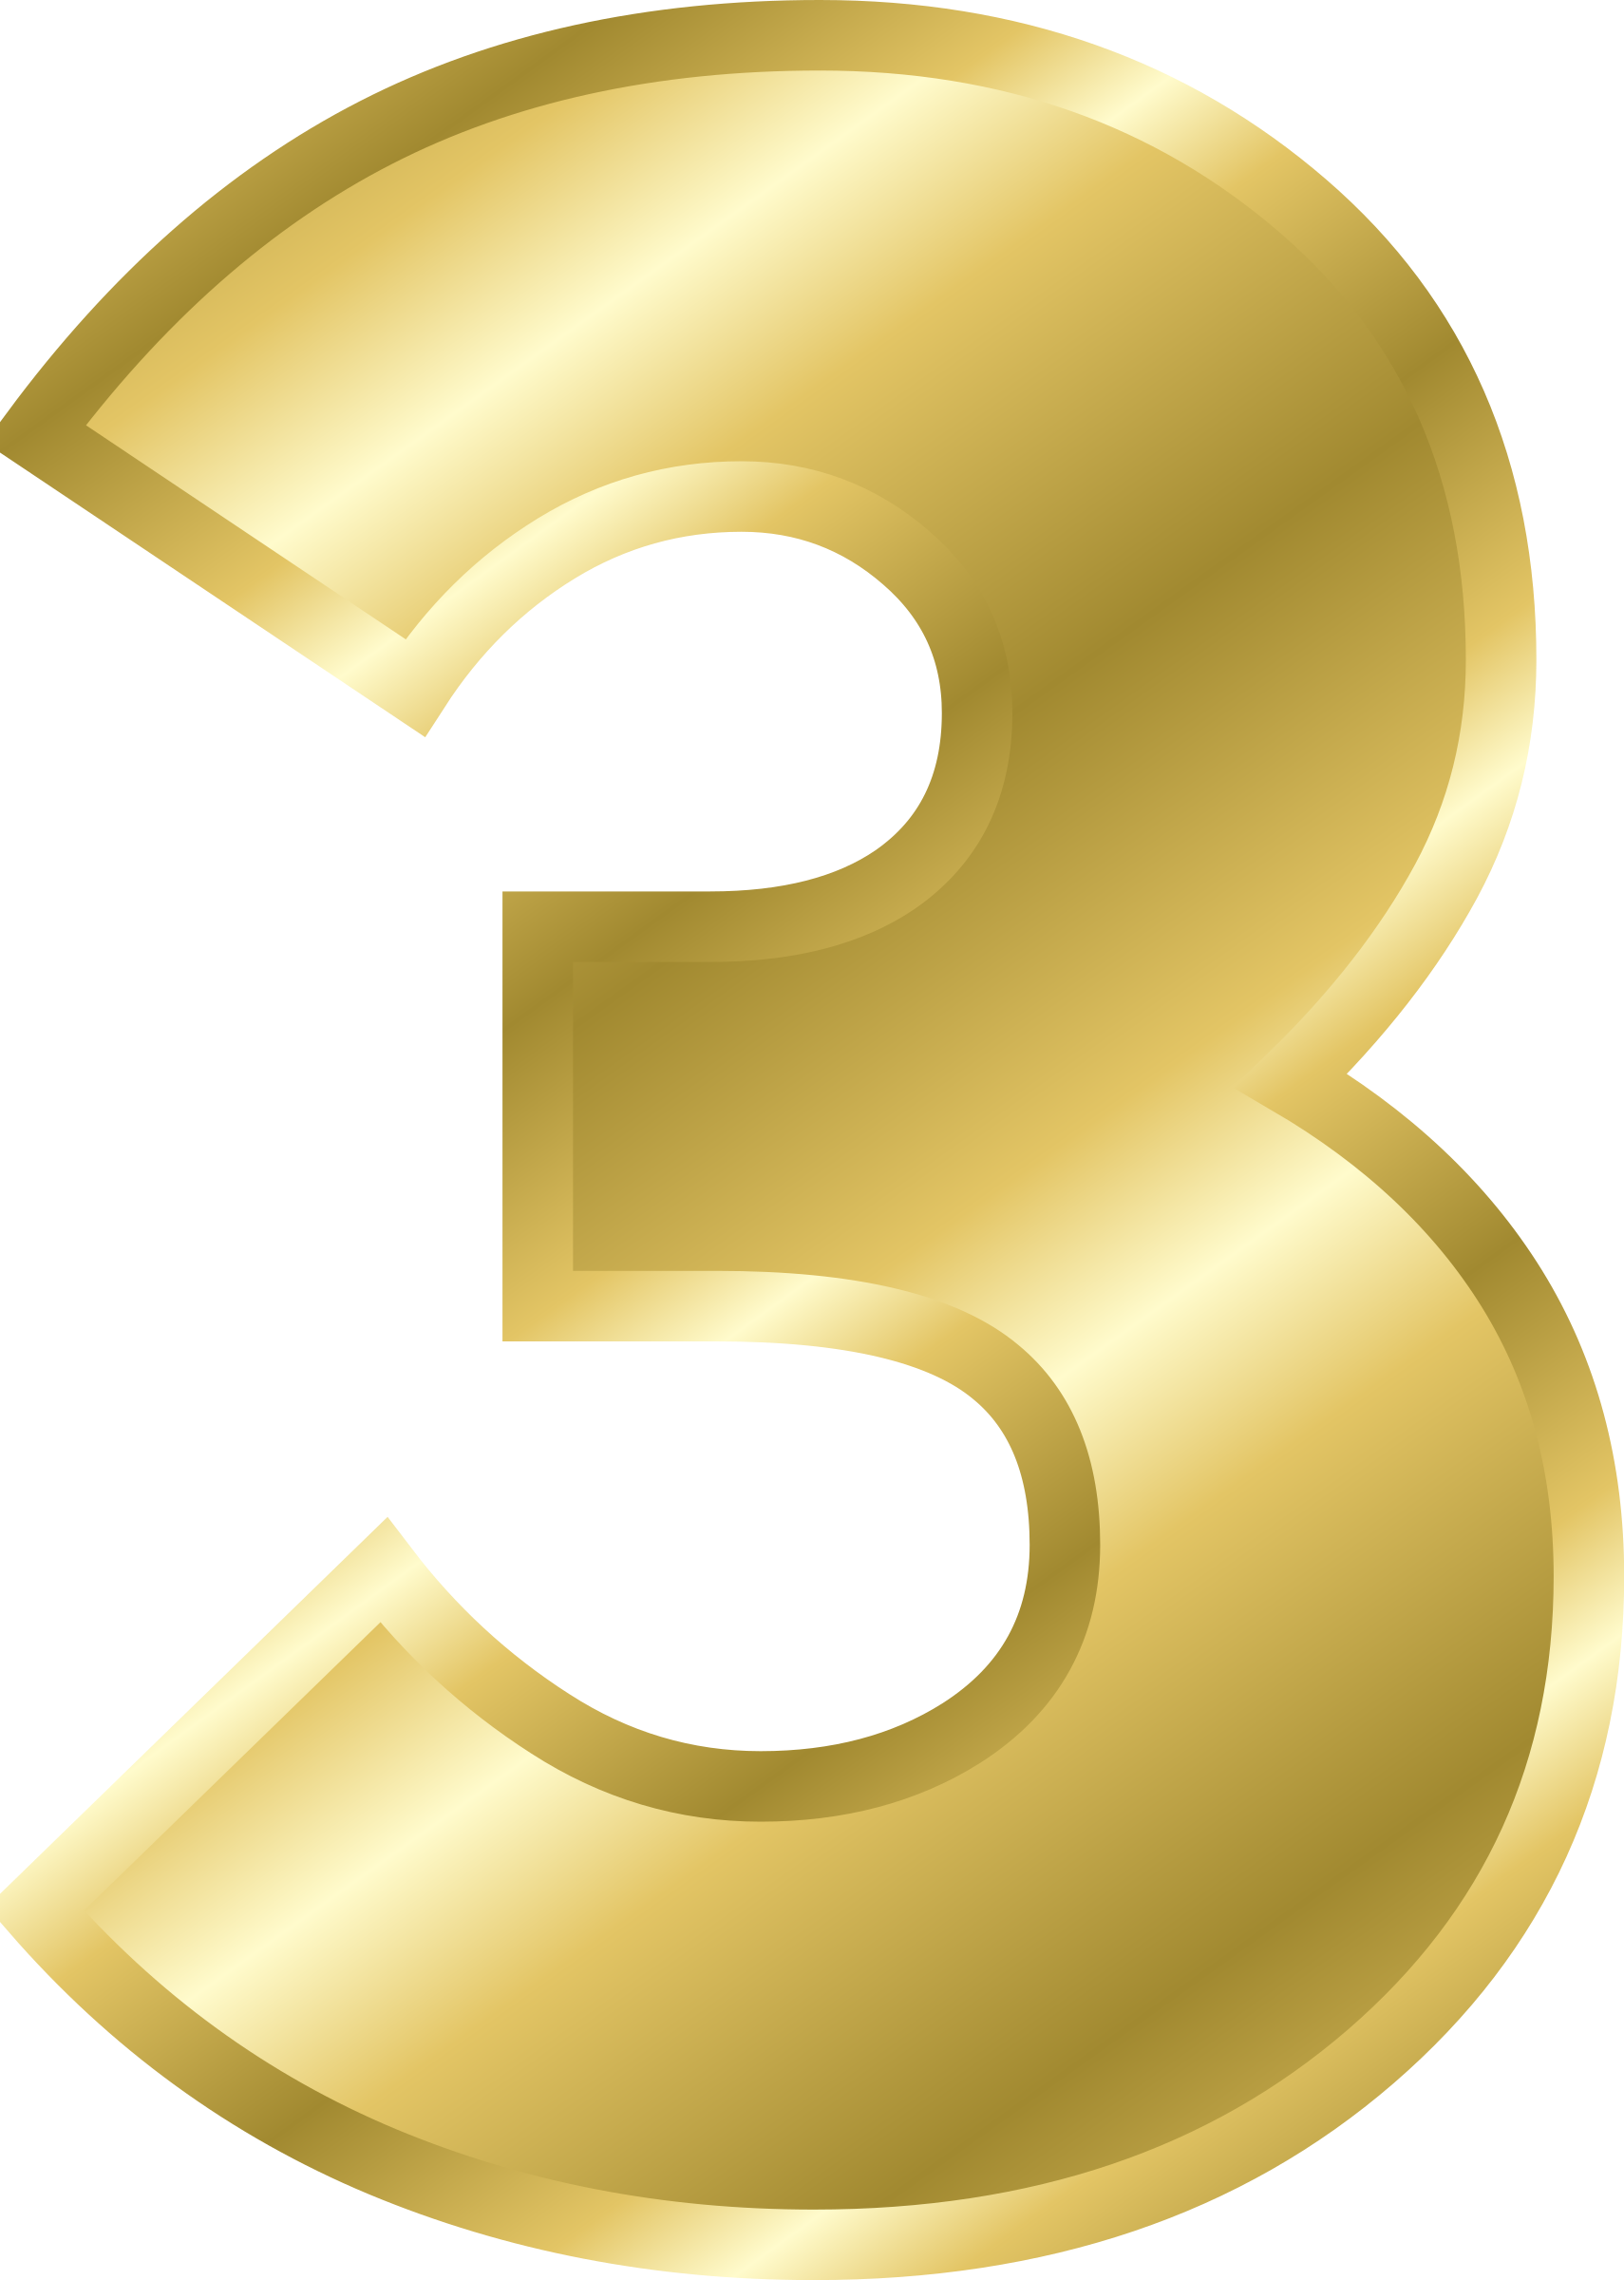 Number 3 Clipart Gold  Number 3 Gold Transparent Free For